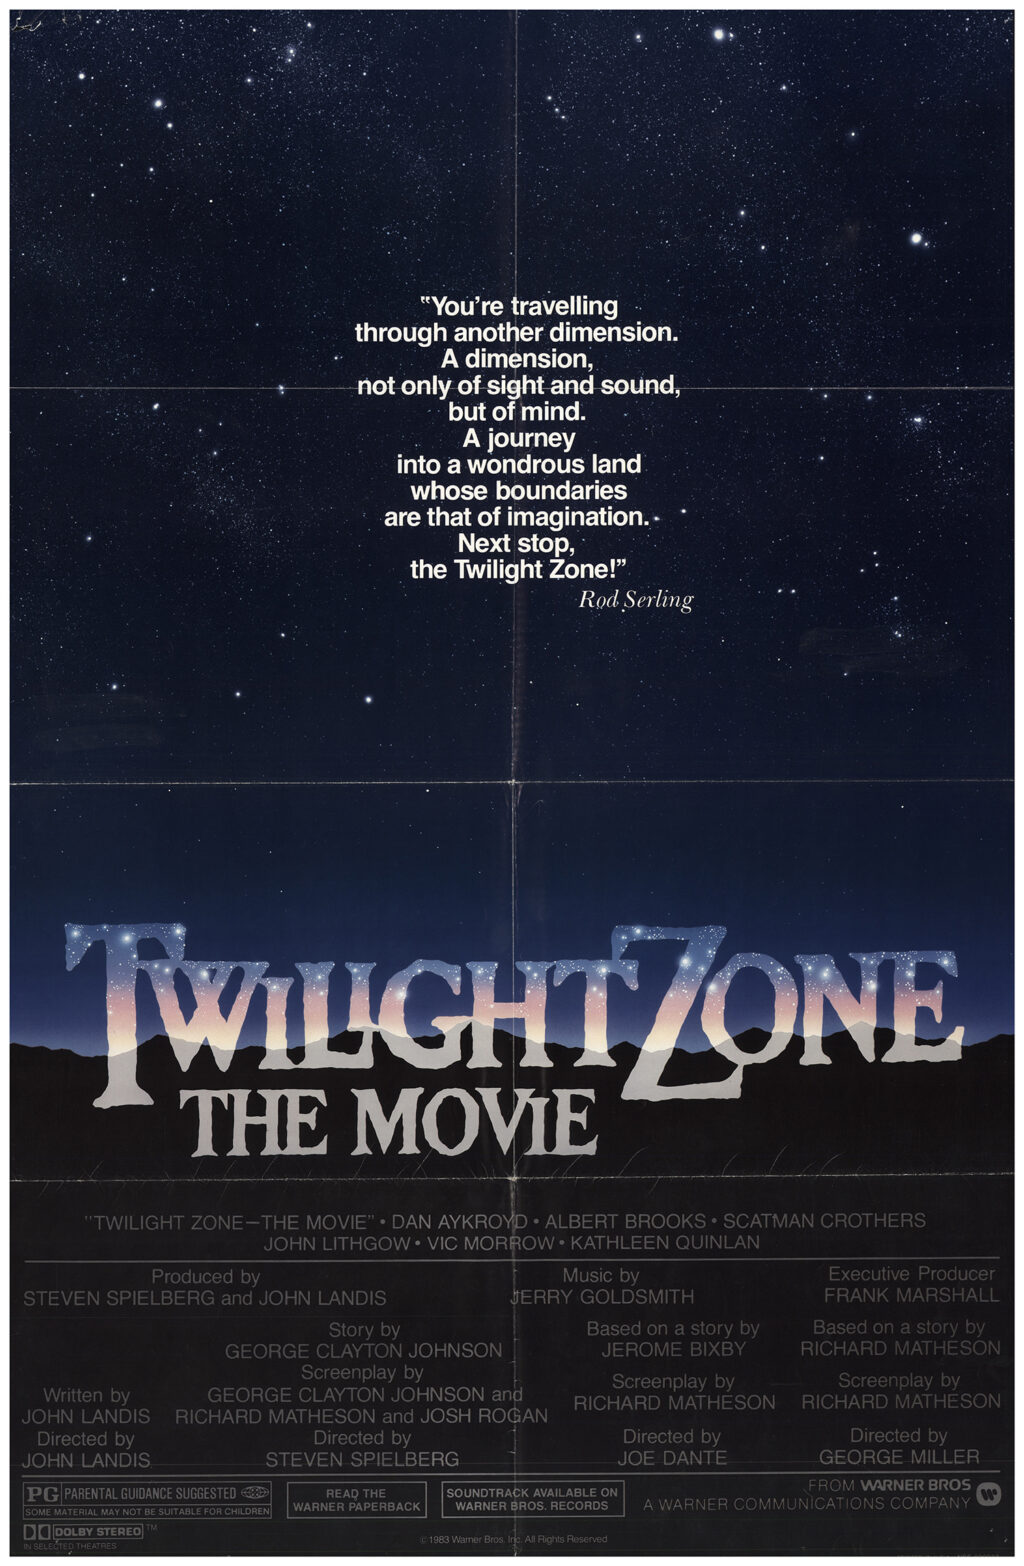 Twilight Zone the Movie 1983 1024x1566 - This Day in Horror History: TWILIGHT ZONE: THE MOVIE Was Released in 1983